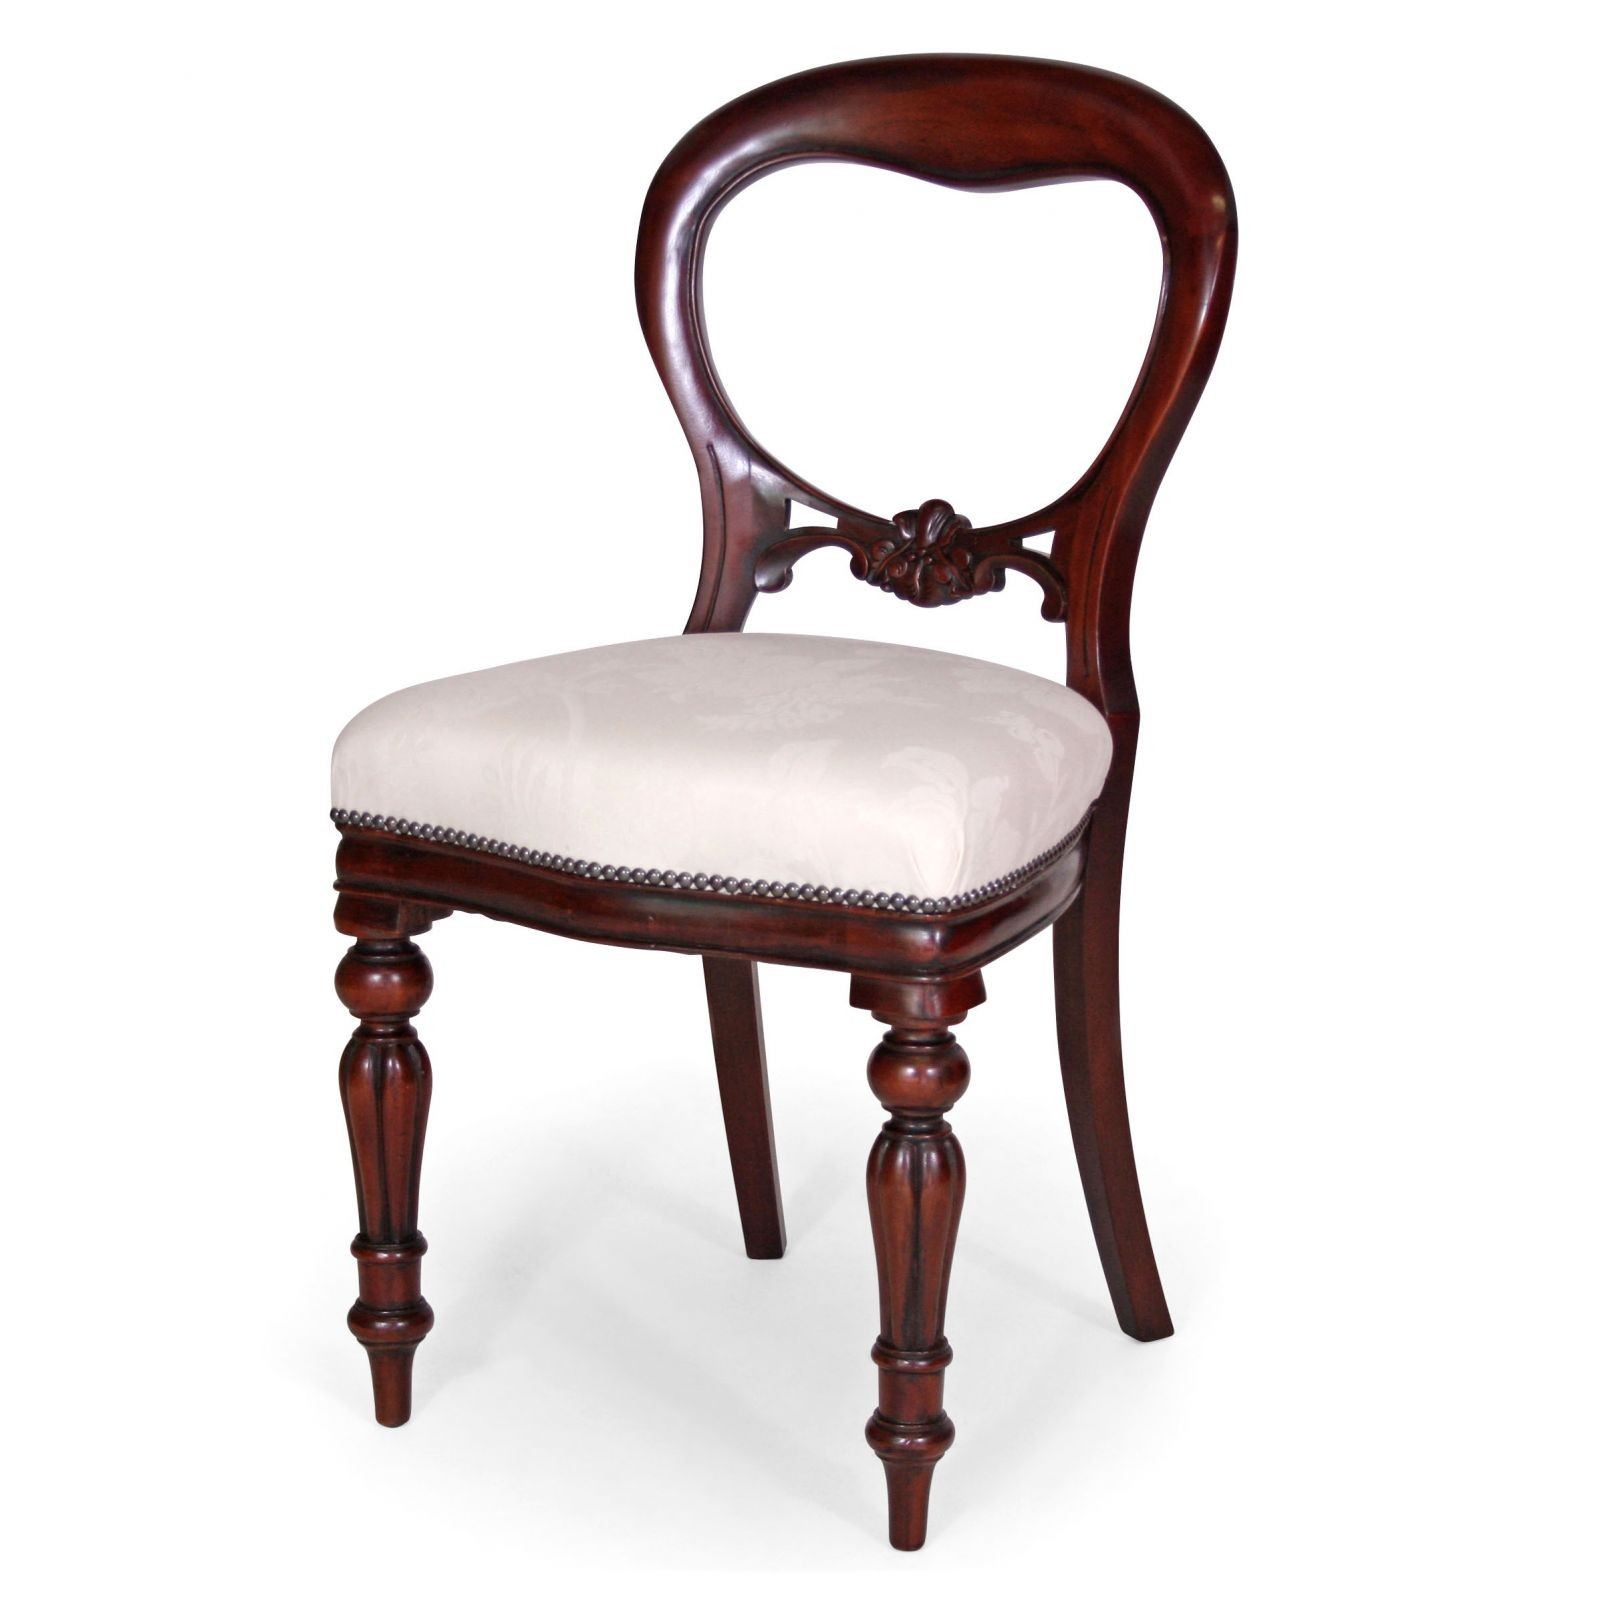 Victorian style balloon back dining chair - in champagne damask